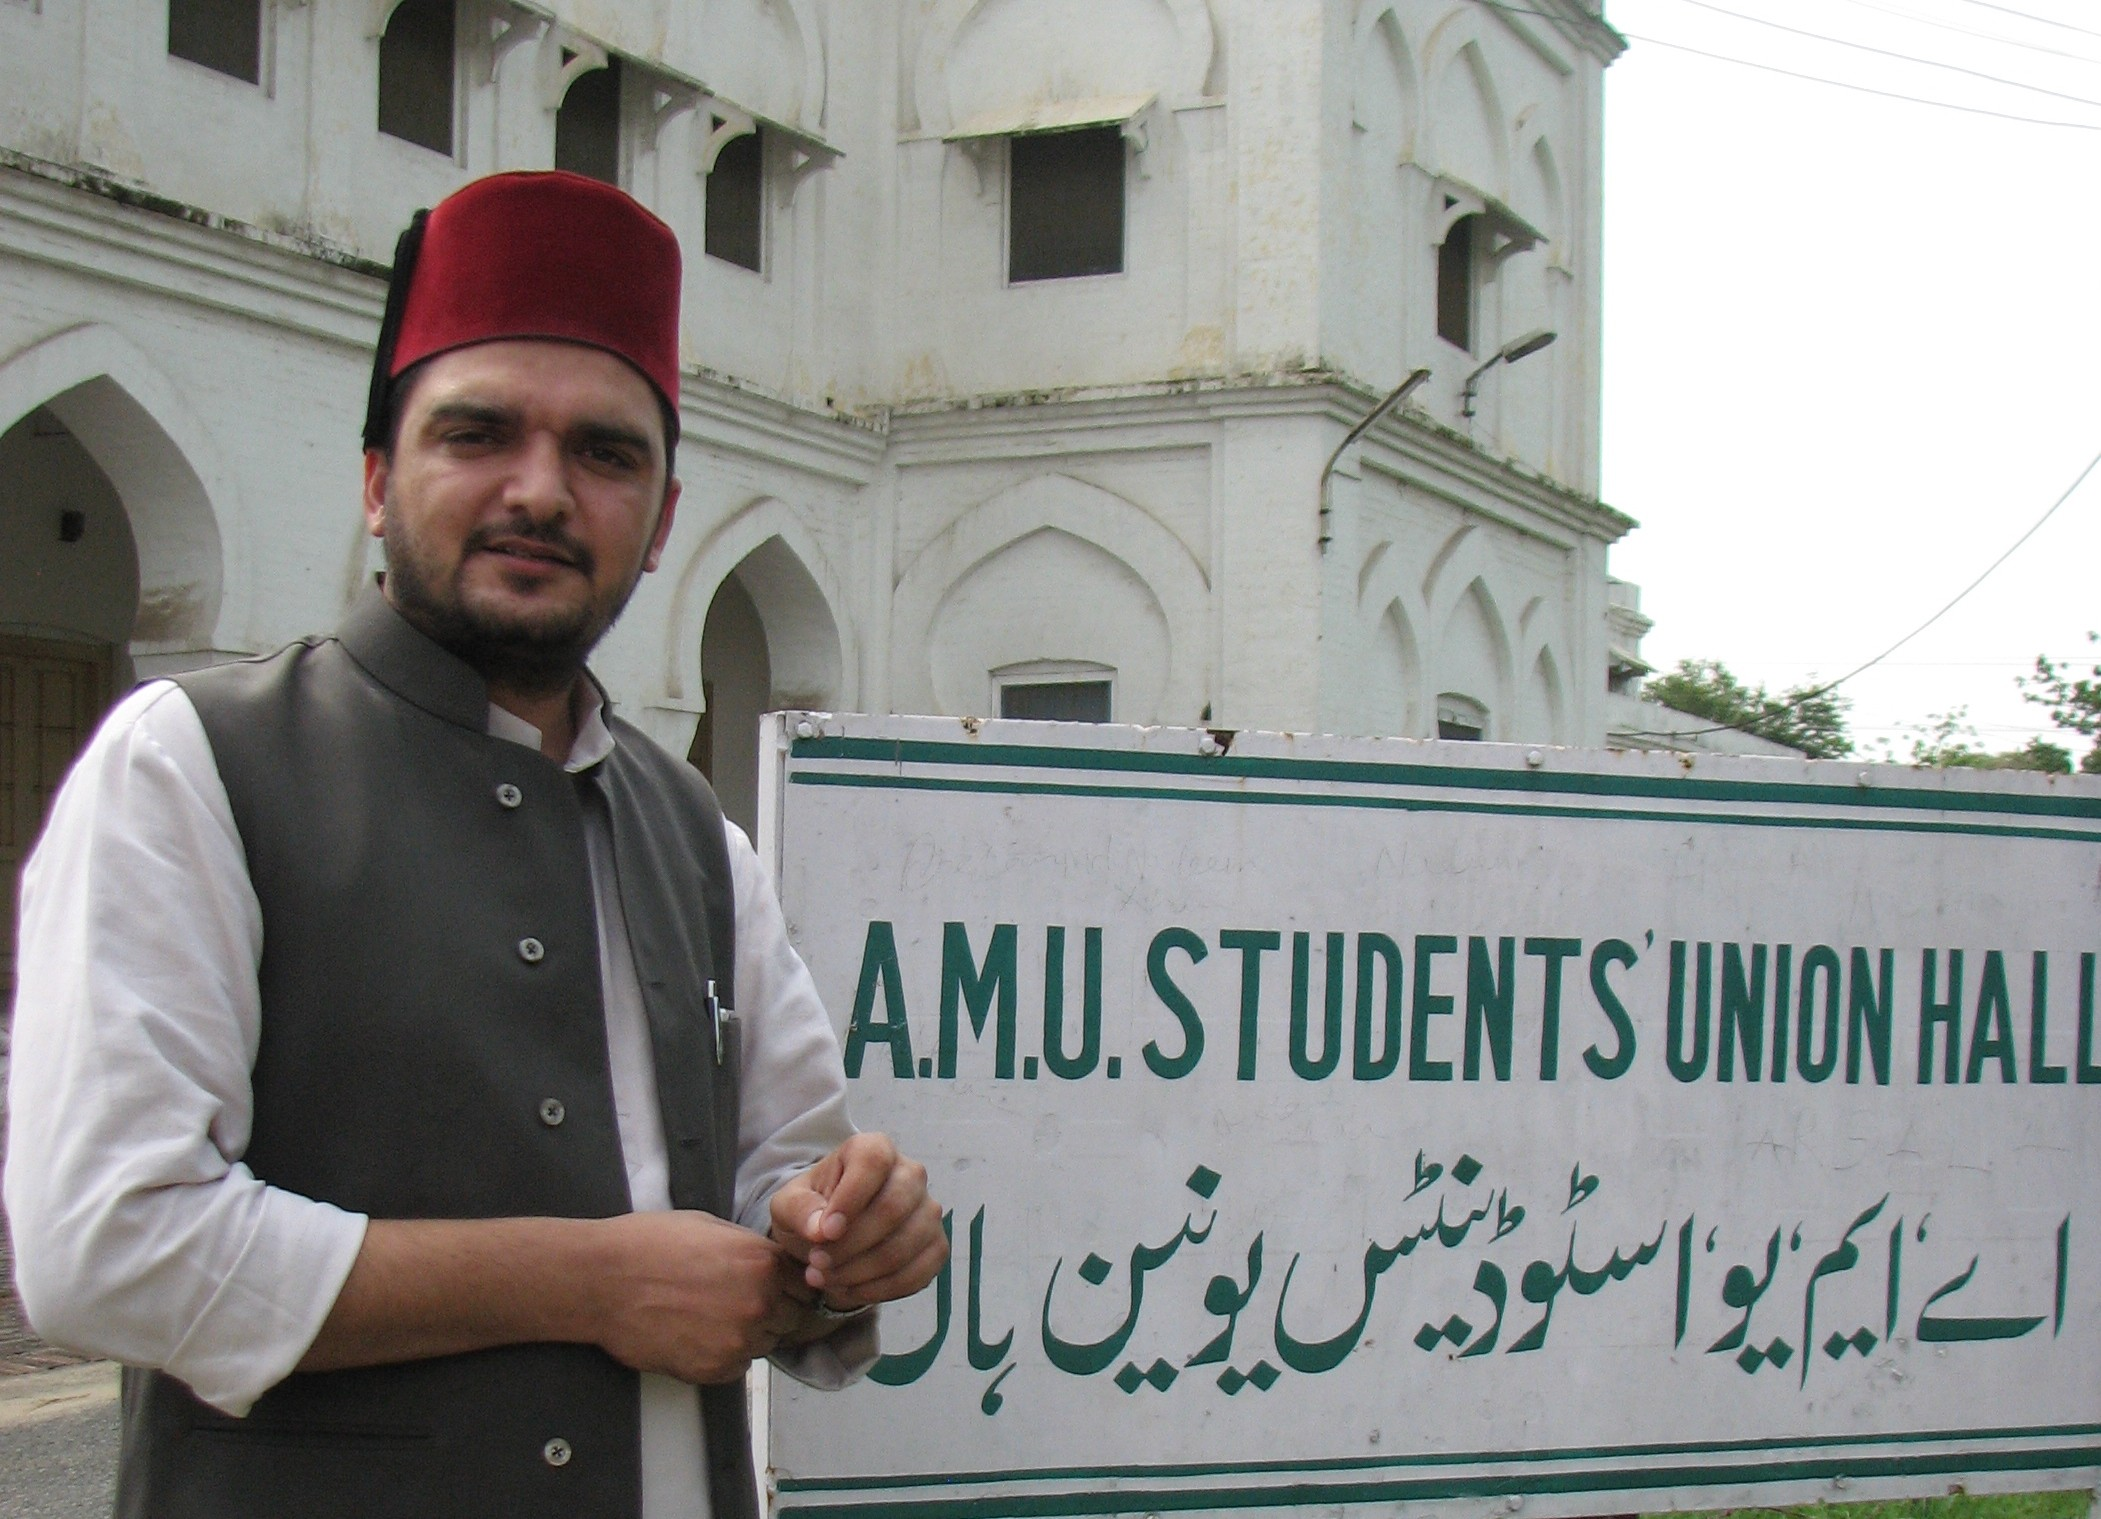 Shahzad Alam Barni at Aligarh Muslim University. Photo by Aparna Kalra.